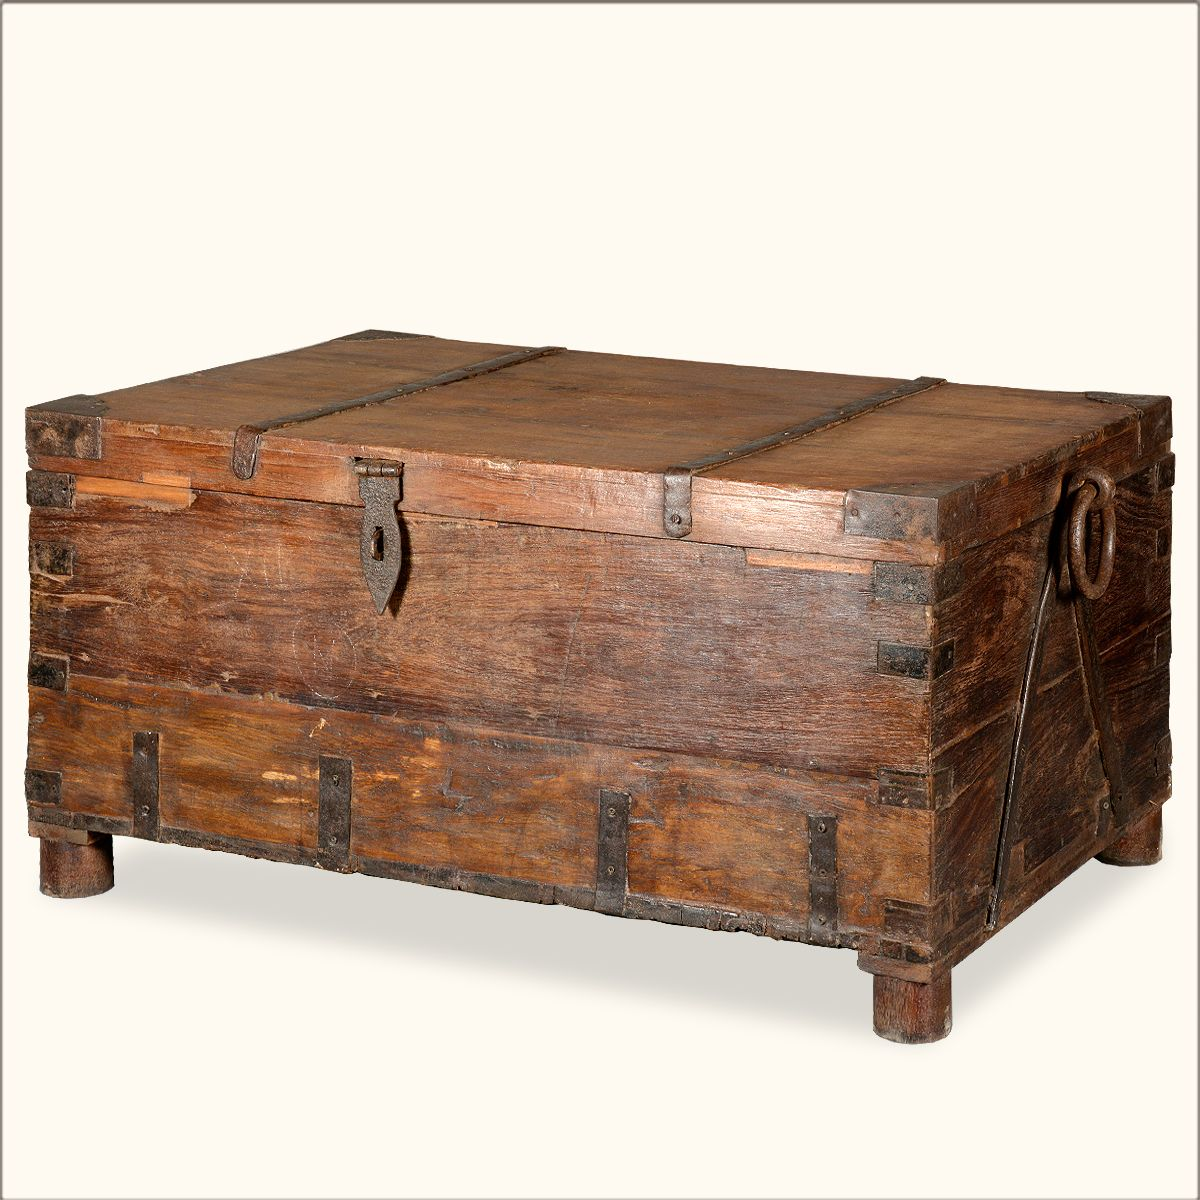 Rustic Reclaimed Wood Pirates Gothic Storage Trunk Chest